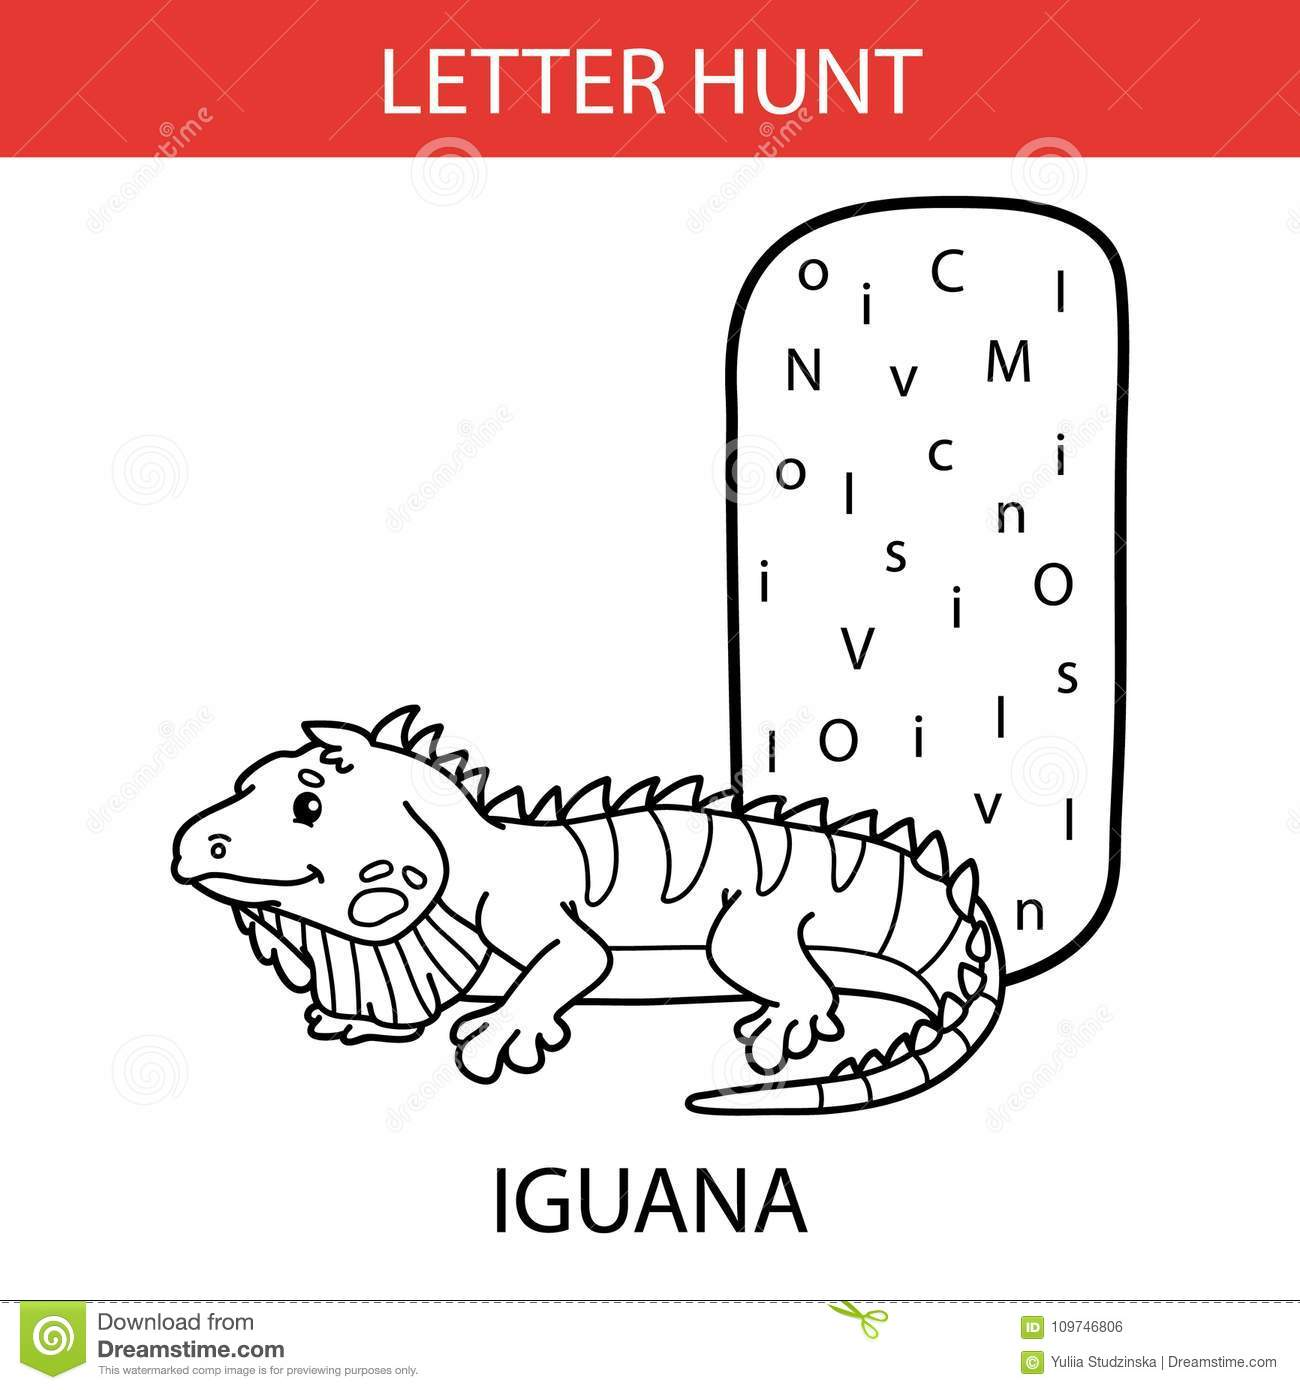 Animal Letter Hunt Iguana Stock Vector Illustration Of Alphabet